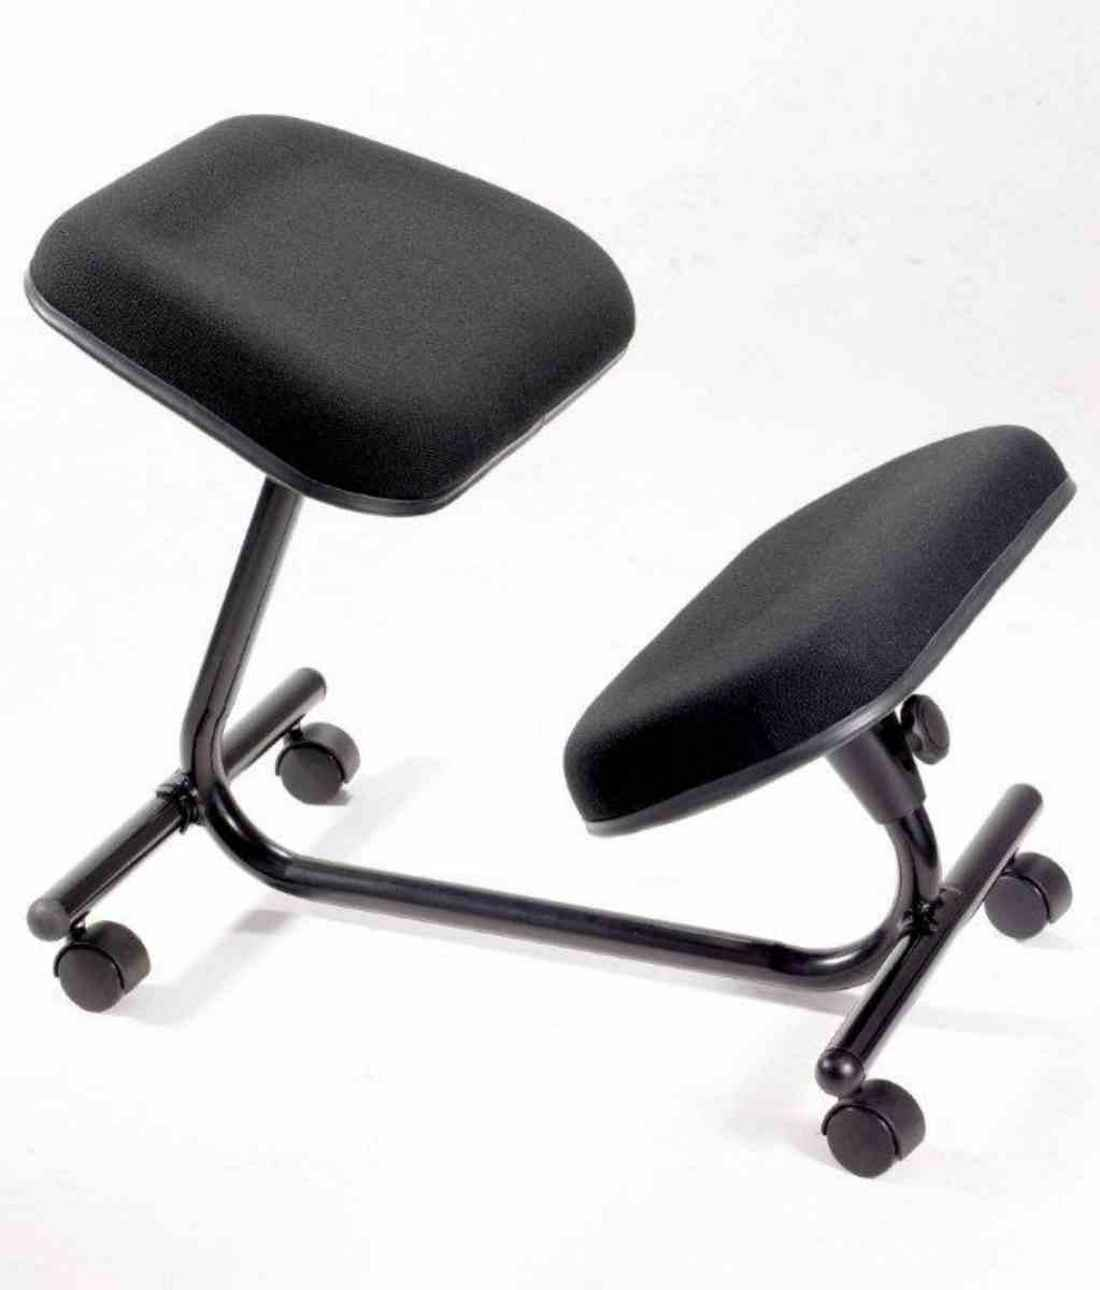 Schreibtischstuhl Ergonomisch Choosing Ergonomic Office Chair For More Efficient